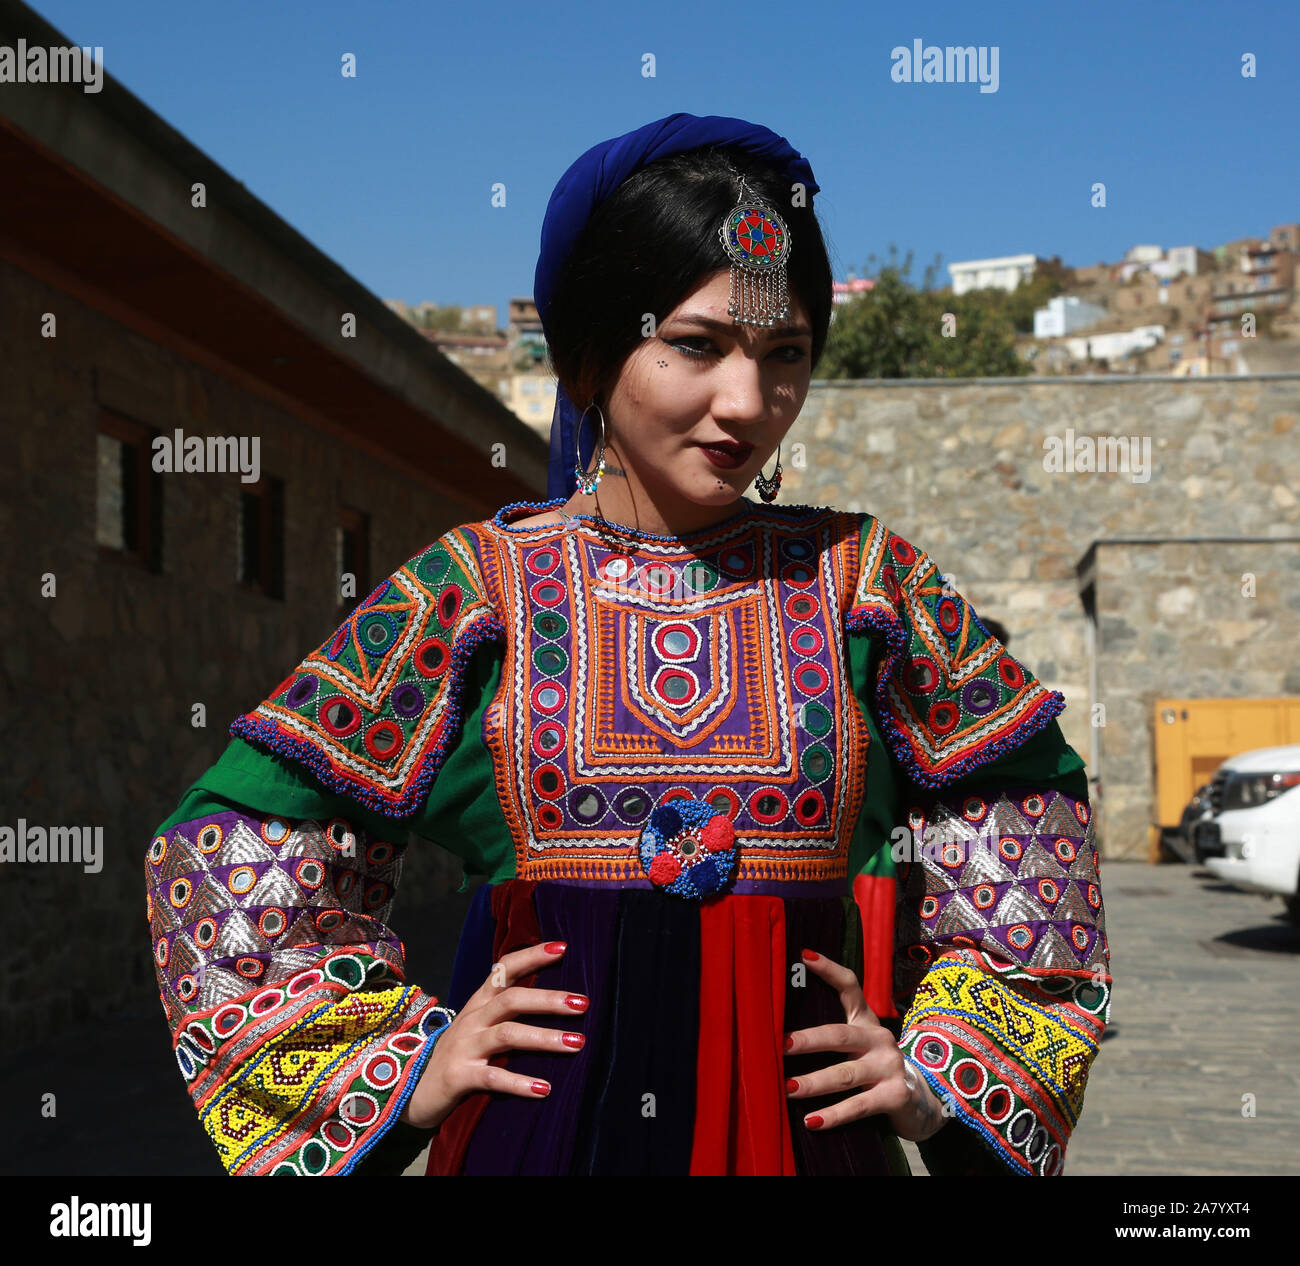 Kabul Afghanistan 4th Nov 2019 A Model Poses For Photos After Presenting Costumes Of Ethnic People In Afghanistan During A Fashion Show In Kabul Capital Of Afghanistan Nov 4 2019 Credit Rahmatullah